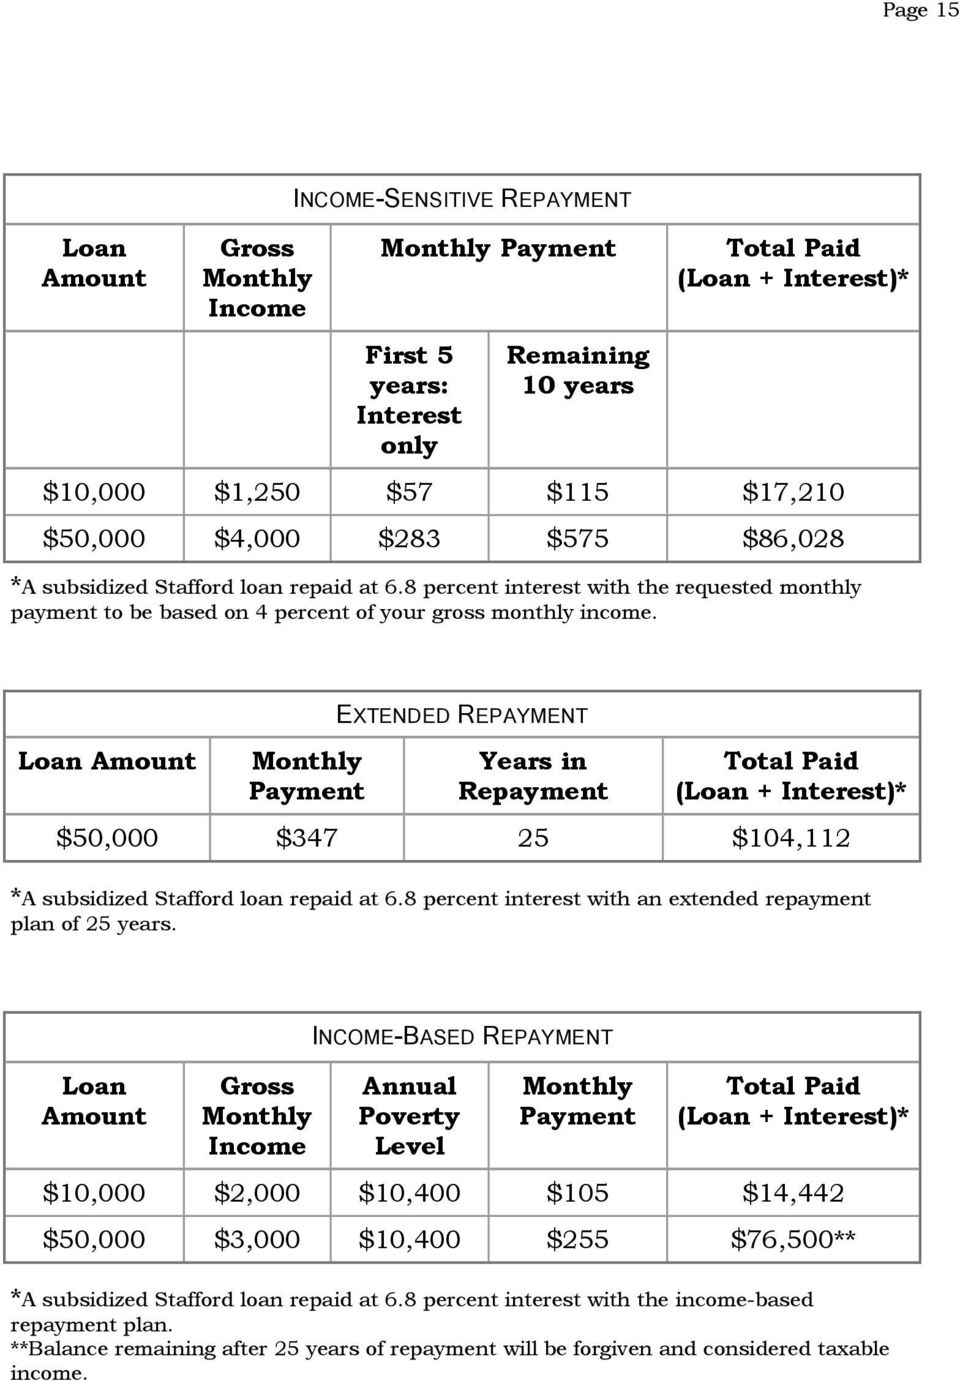 Loan Amount Monthly Payment EXTENDED REPAYMENT Years in Repayment Total Paid (Loan + Interest)* $50,000 $347 25 $104,112 *A subsidized Stafford loan repaid at 6.